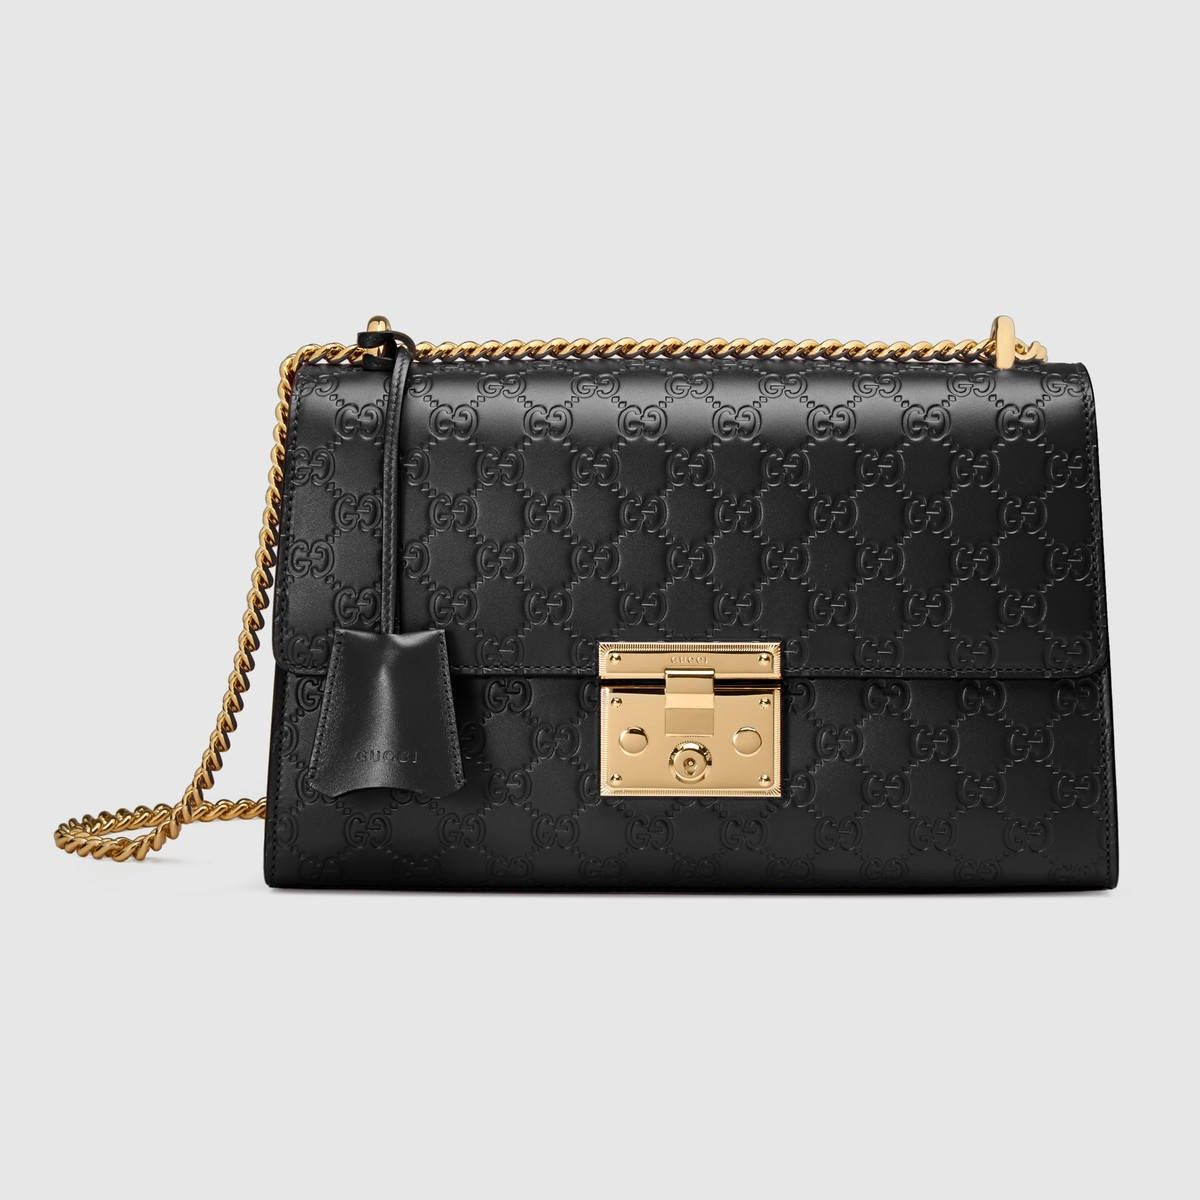 bfb6717dbf0b9 GUCCI Padlock Gucci Signature shoulder bag - black Gucci signature.  gucci   bags  shoulder bags  hand bags  lace  suede  lining